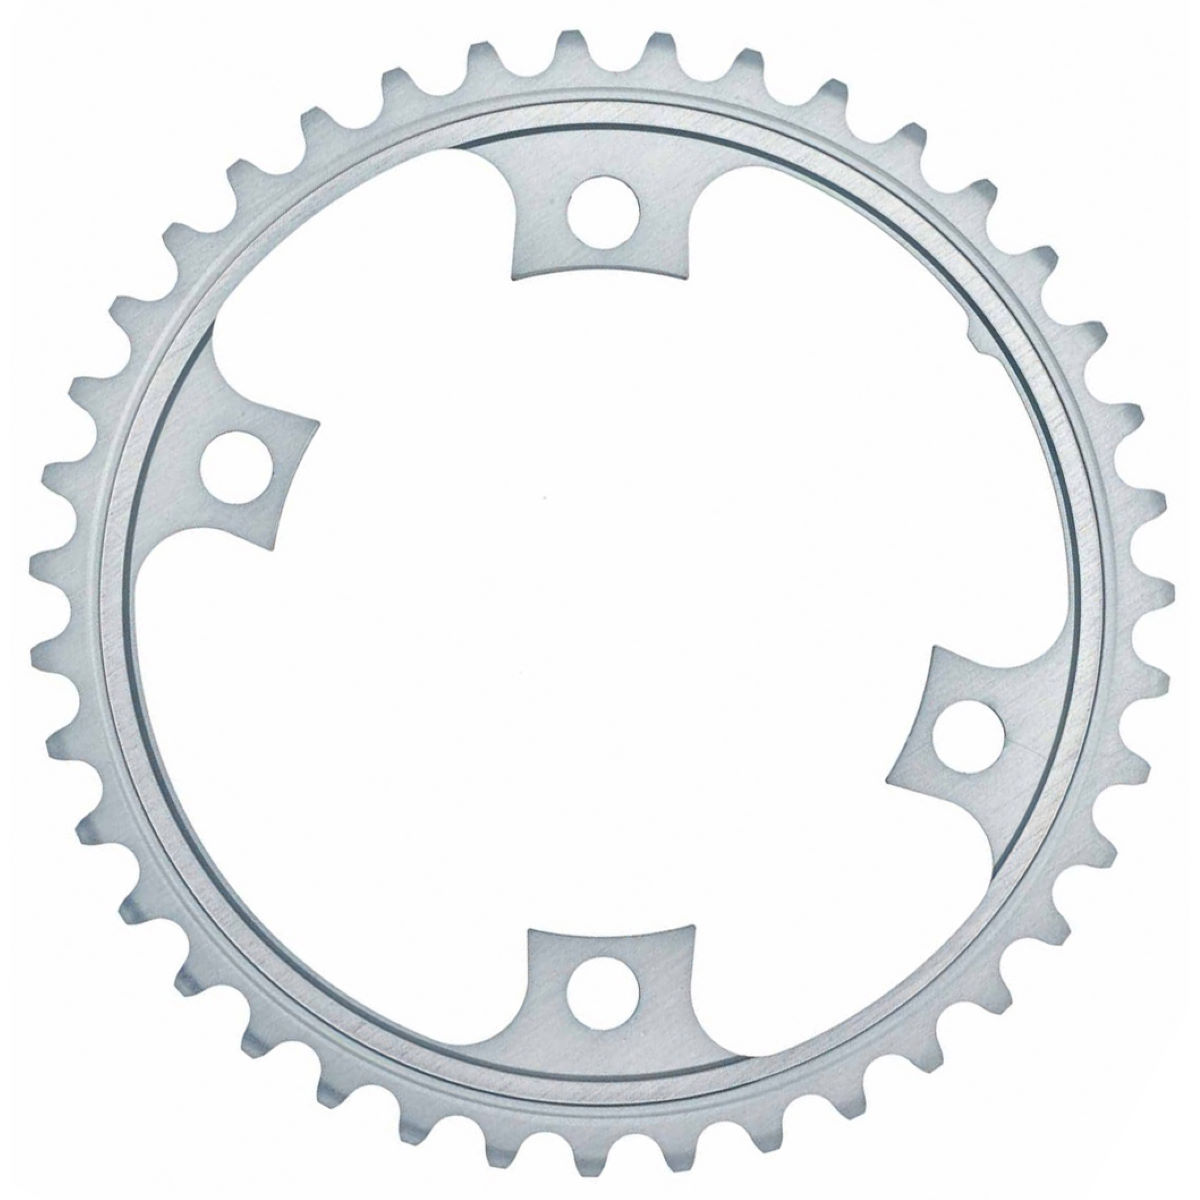 Shimano 105 Fc5800 11sp Double Chainrings - 34t 11 Speed Silver